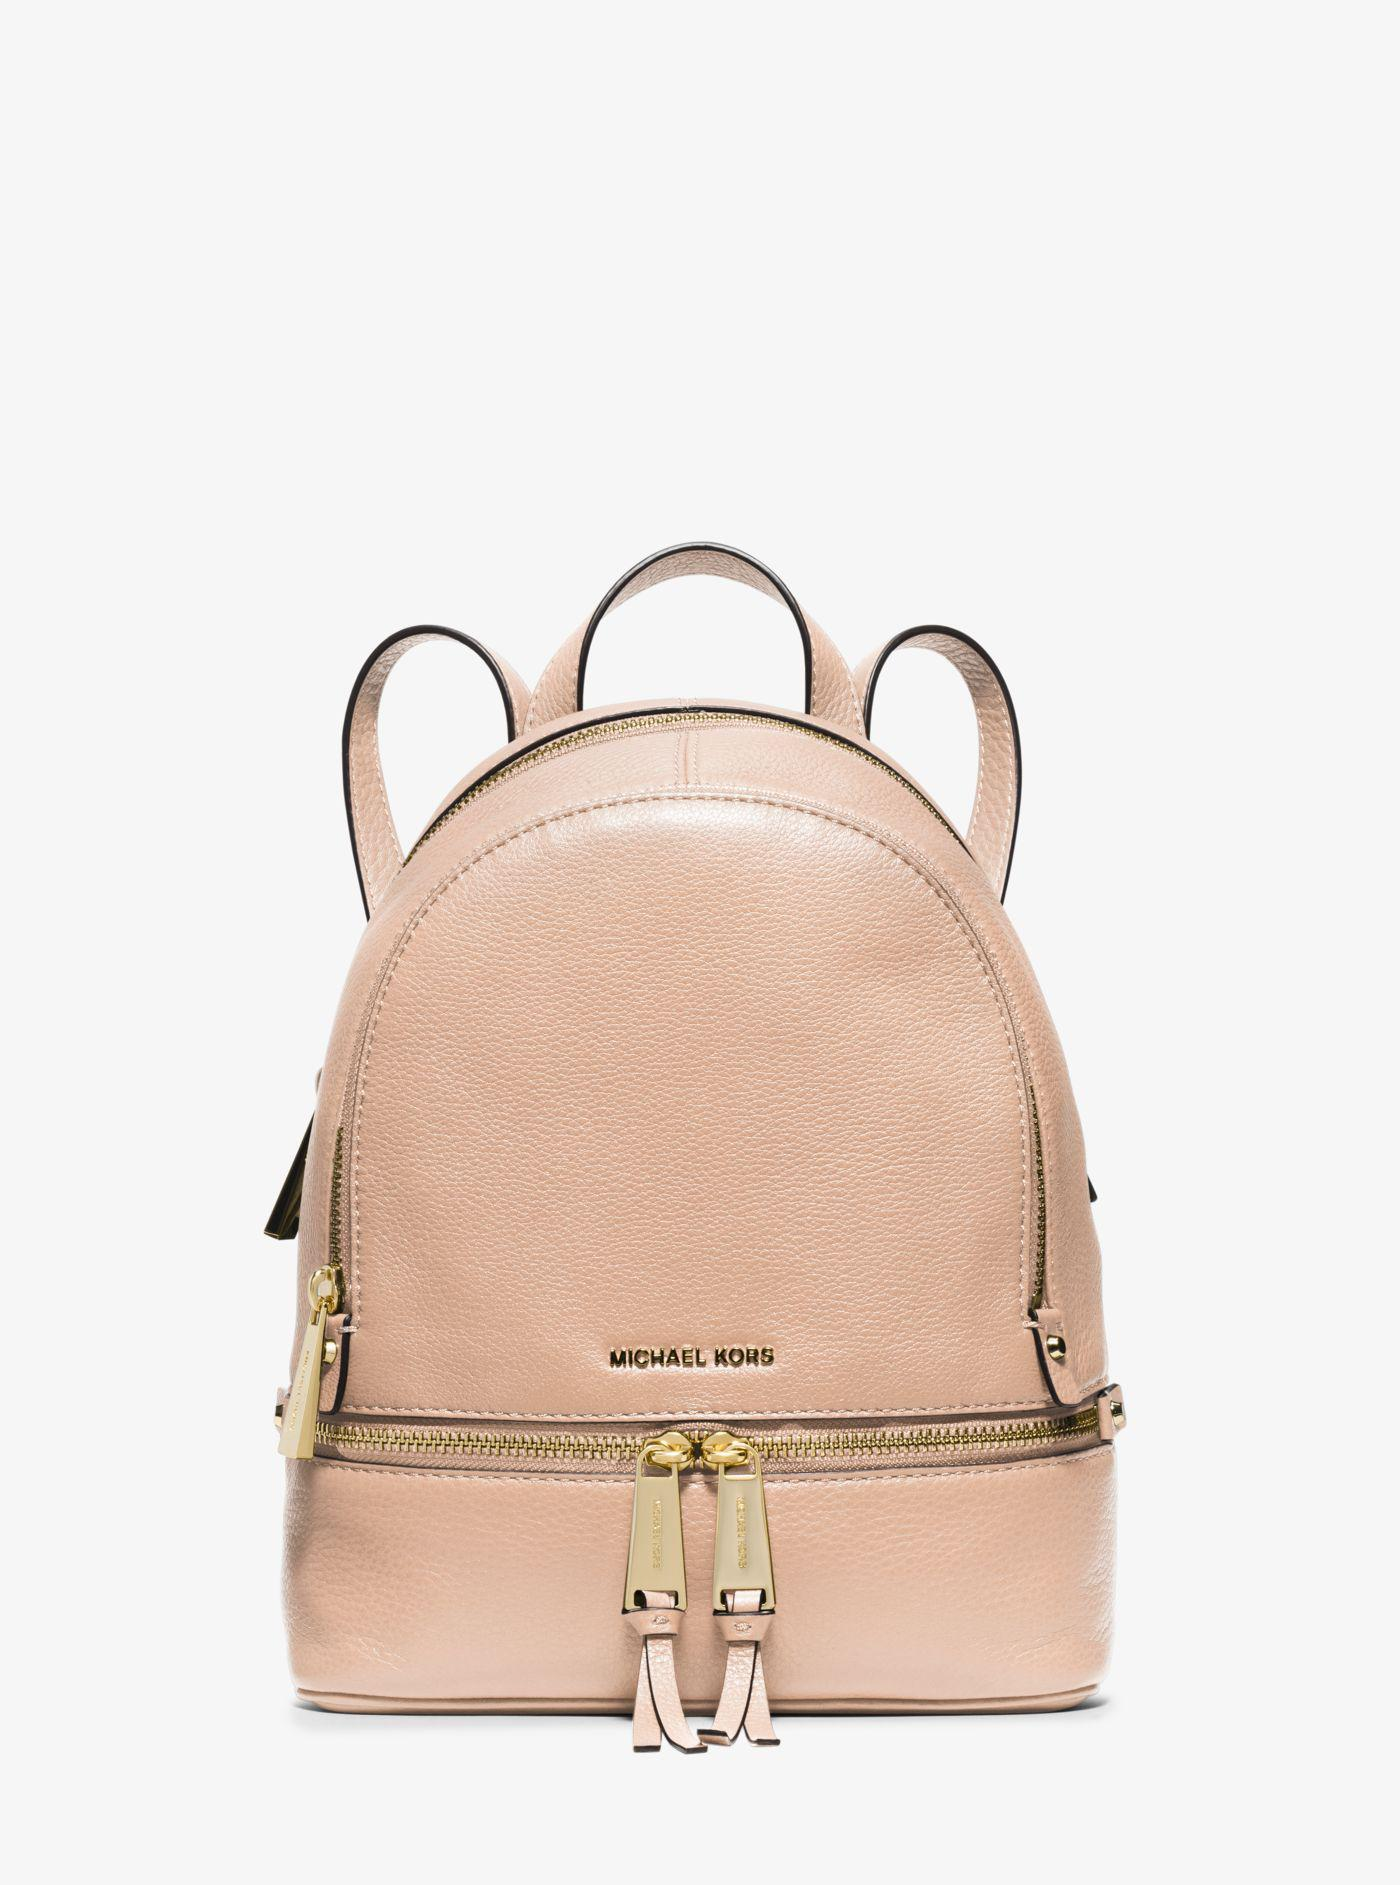 70a8390f54f7 ... cheap lyst michael kors rhea extra small leather backpack in pink a159c  08869